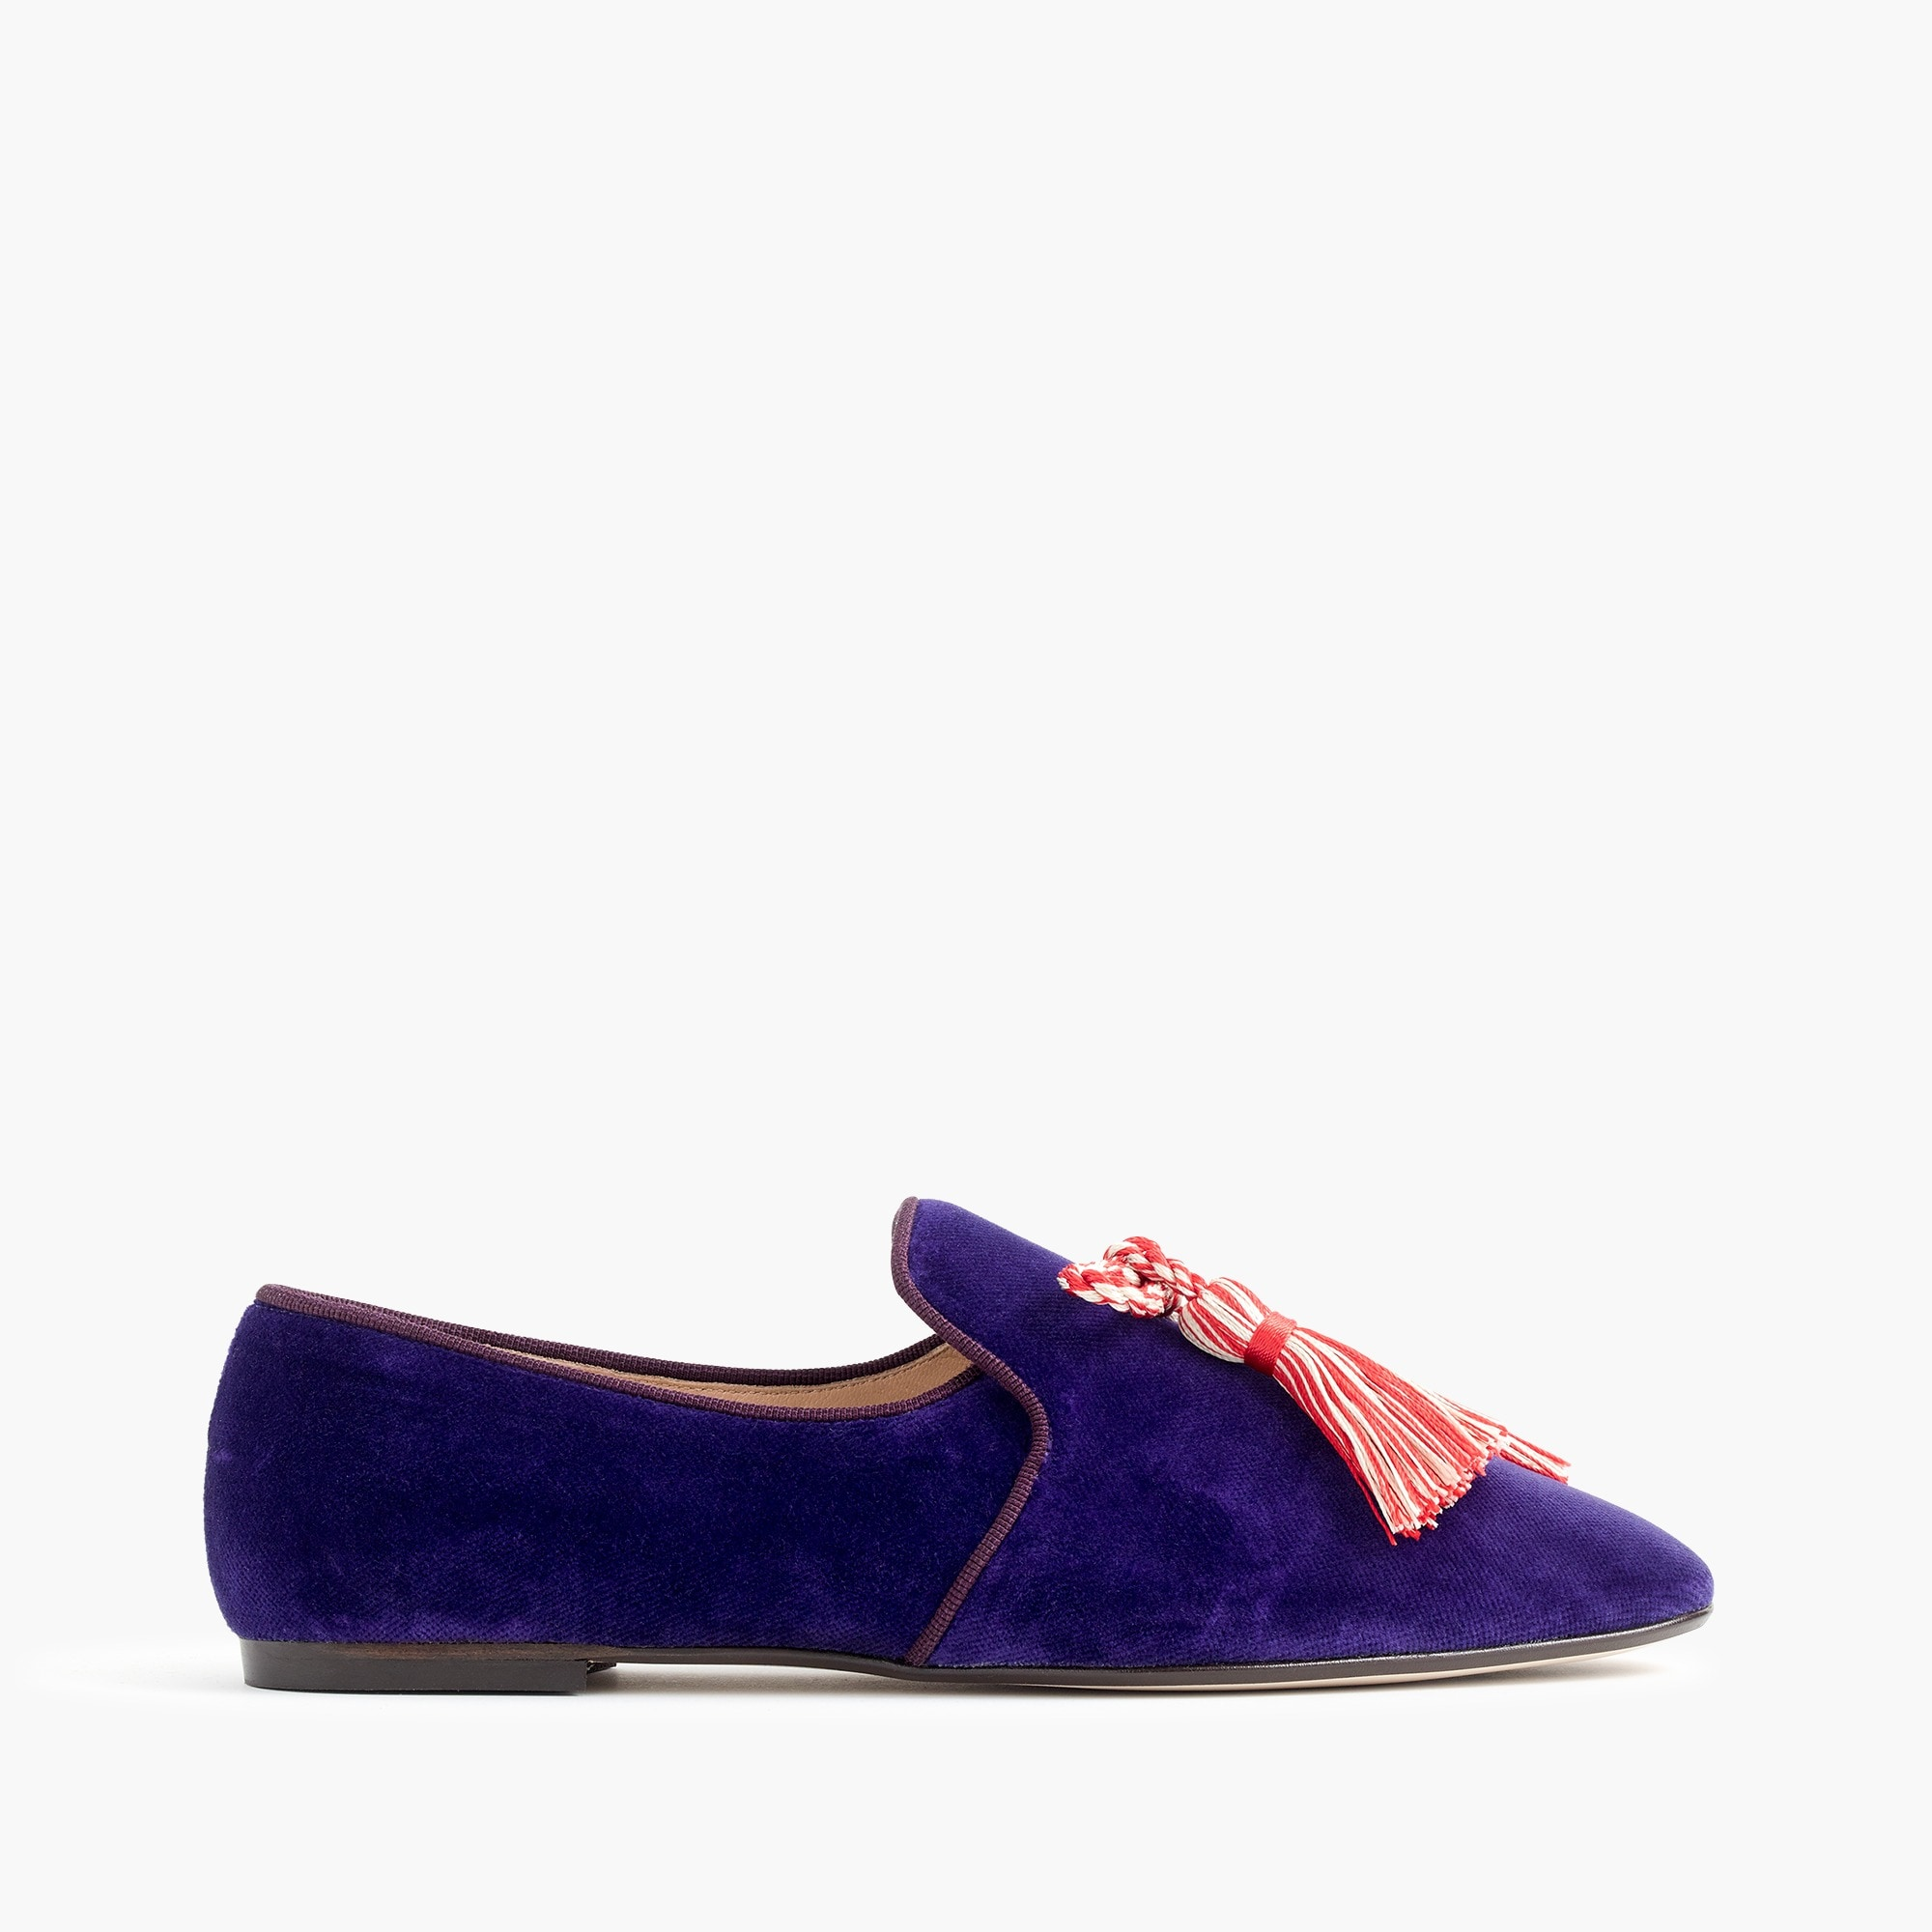 velvet smoking slippers :